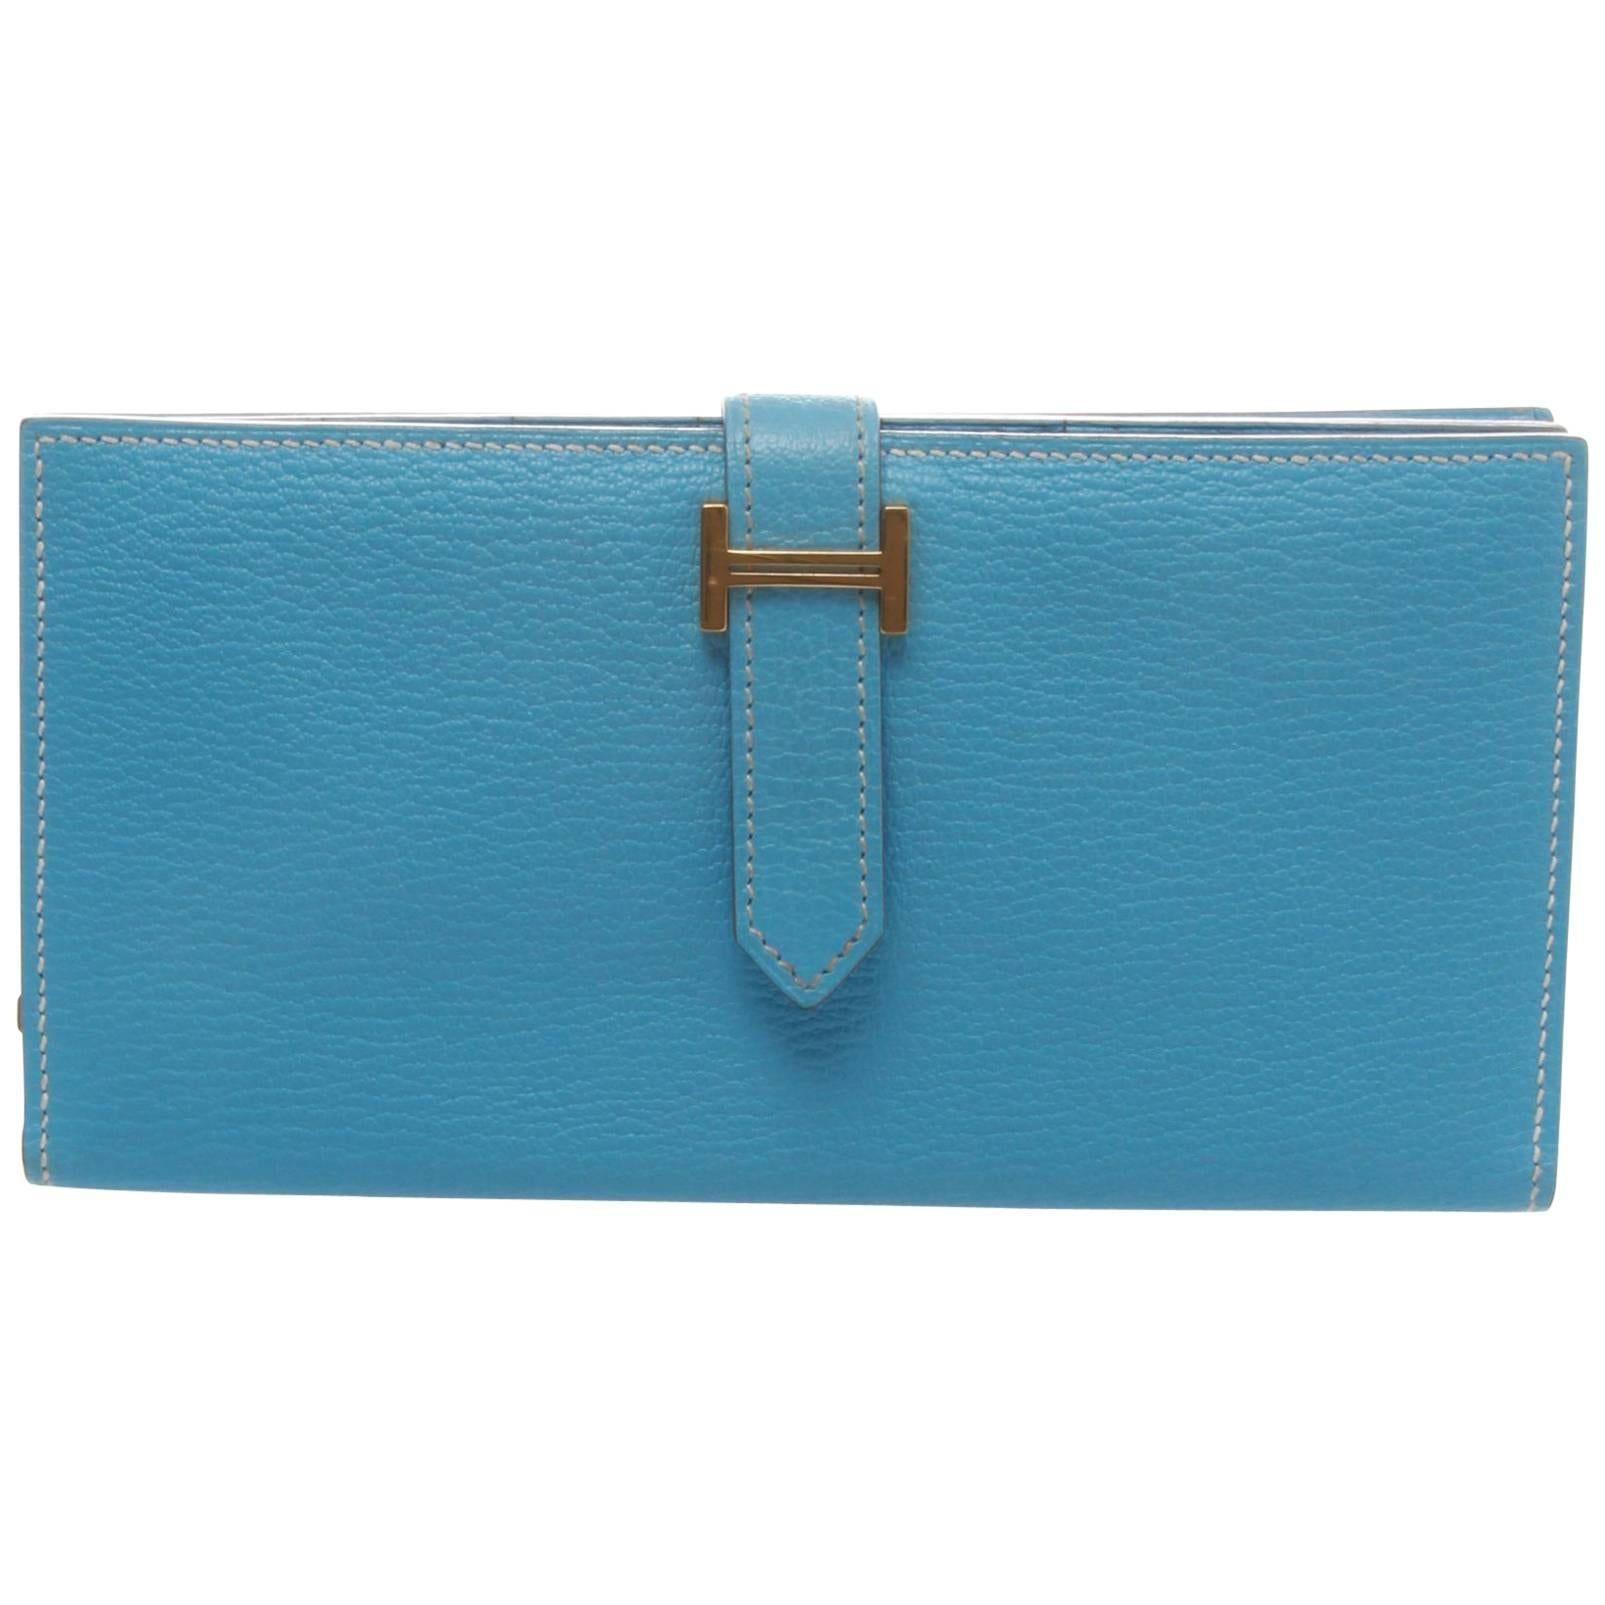 Hermès Hermes Anemone Blue Izmir Fauve Rodeo Leather Charm Pm Fun tbArGa9q